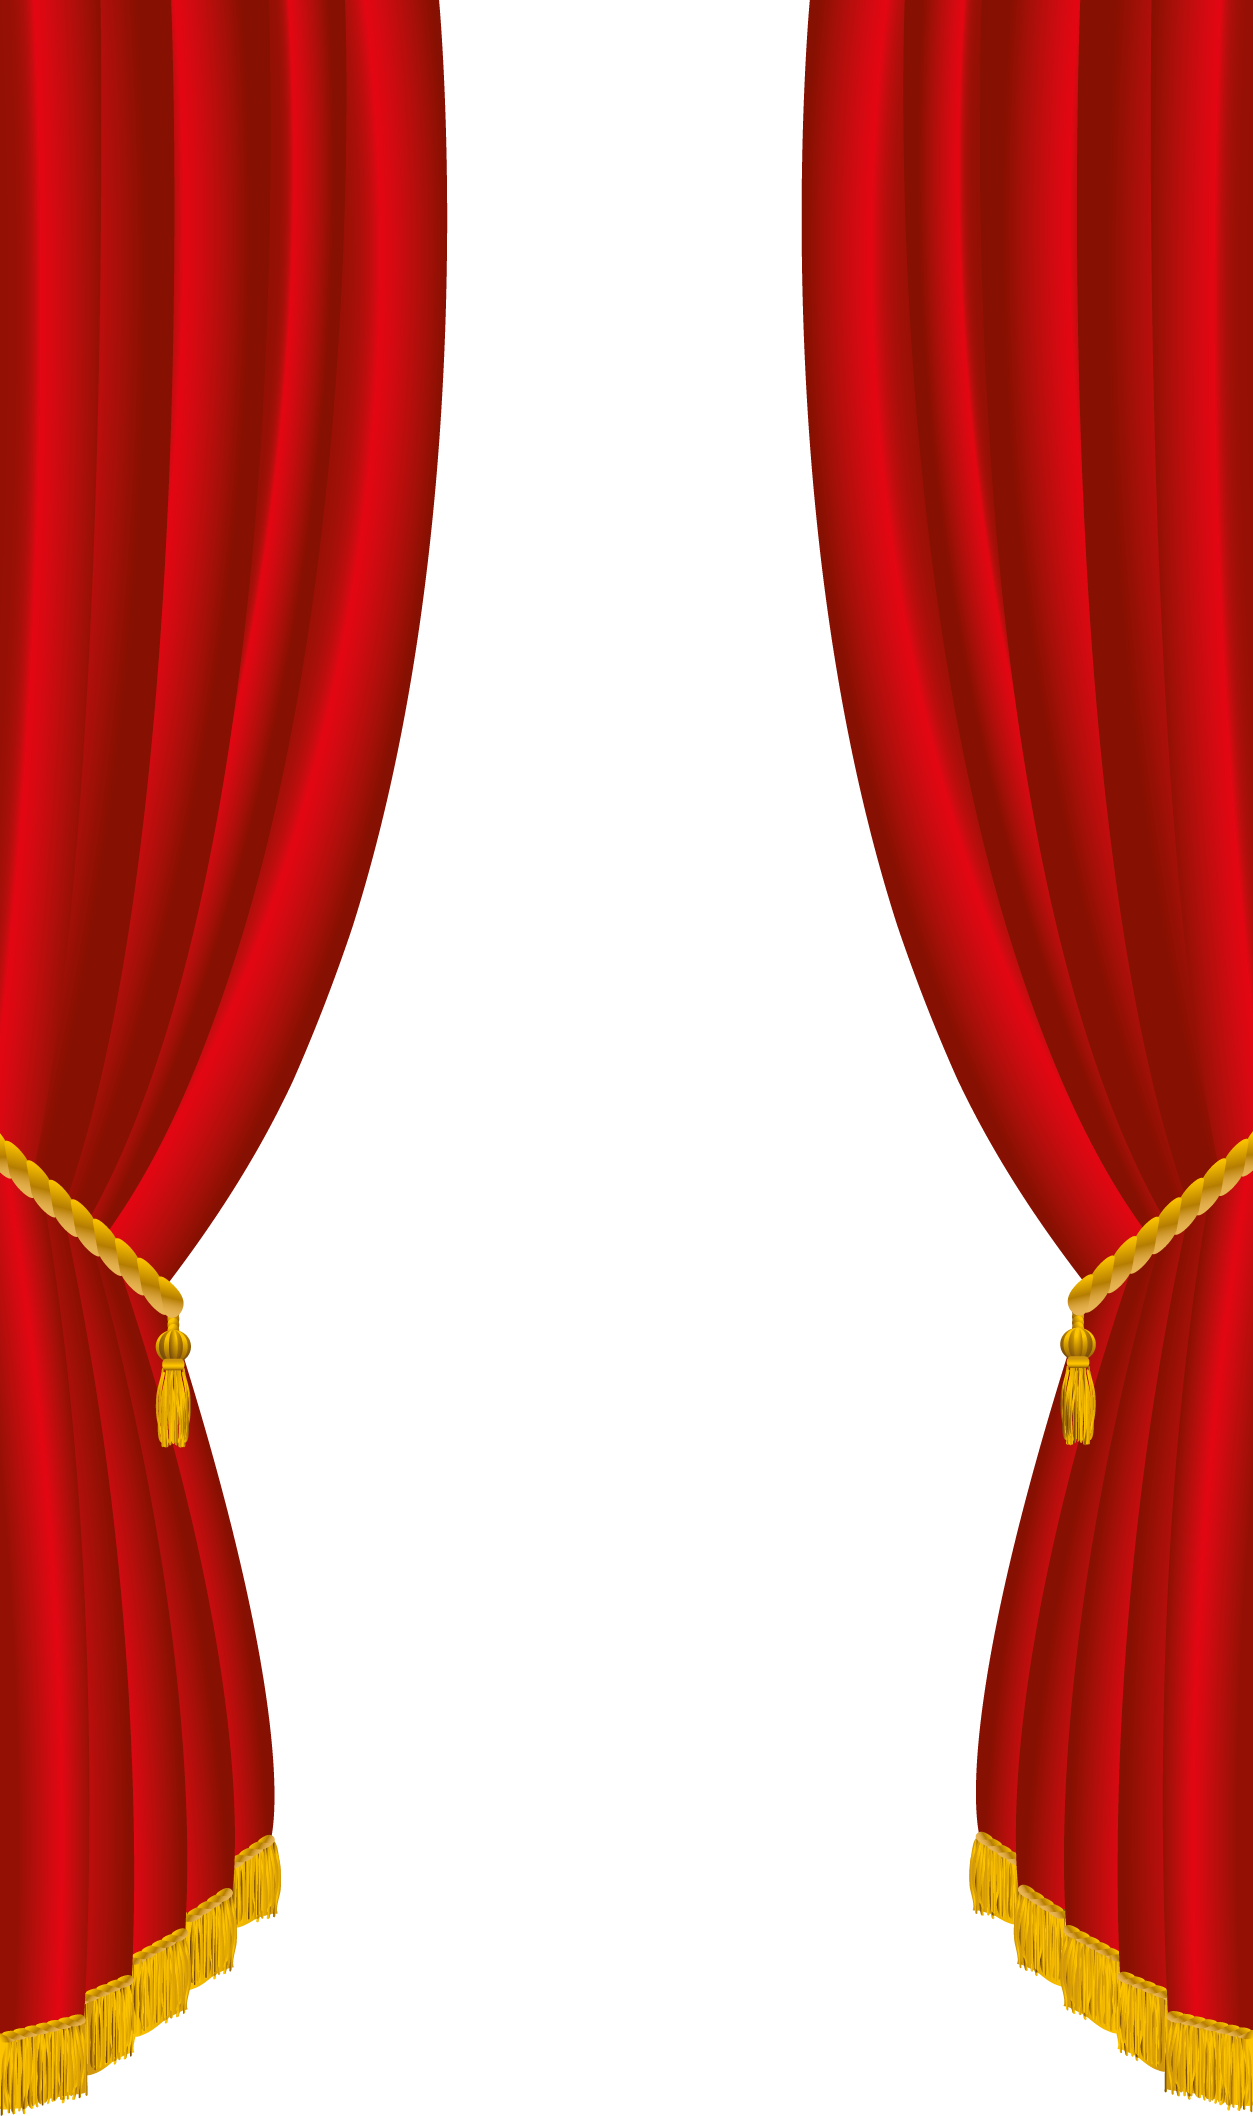 Theatre curtain png. Curtains image purepng free